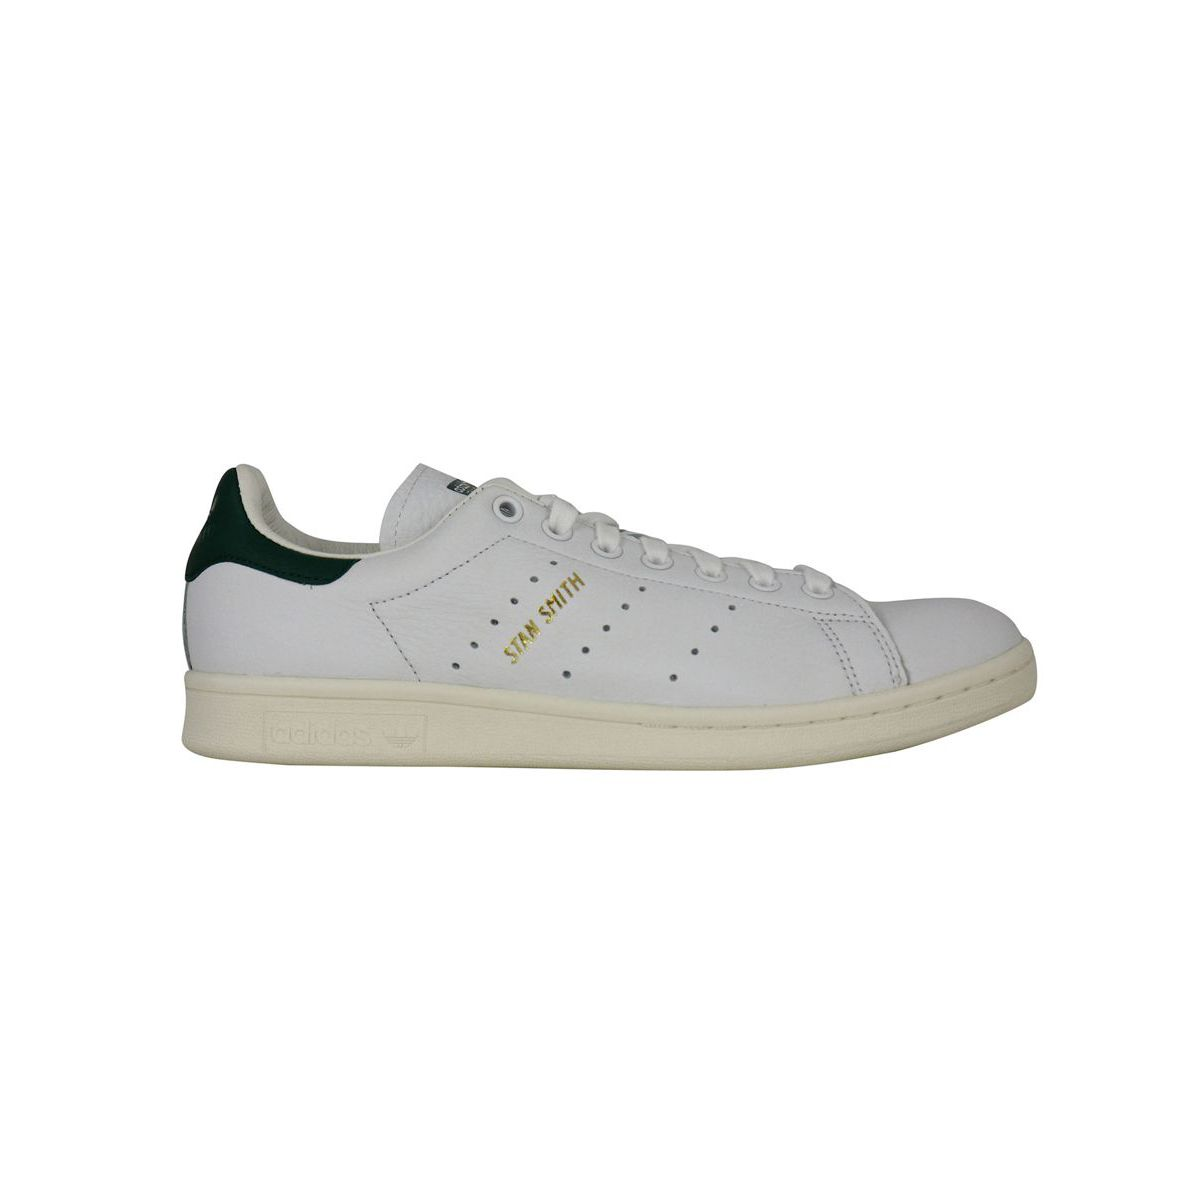 STAN SMITH sneakers with side logo White Adidas